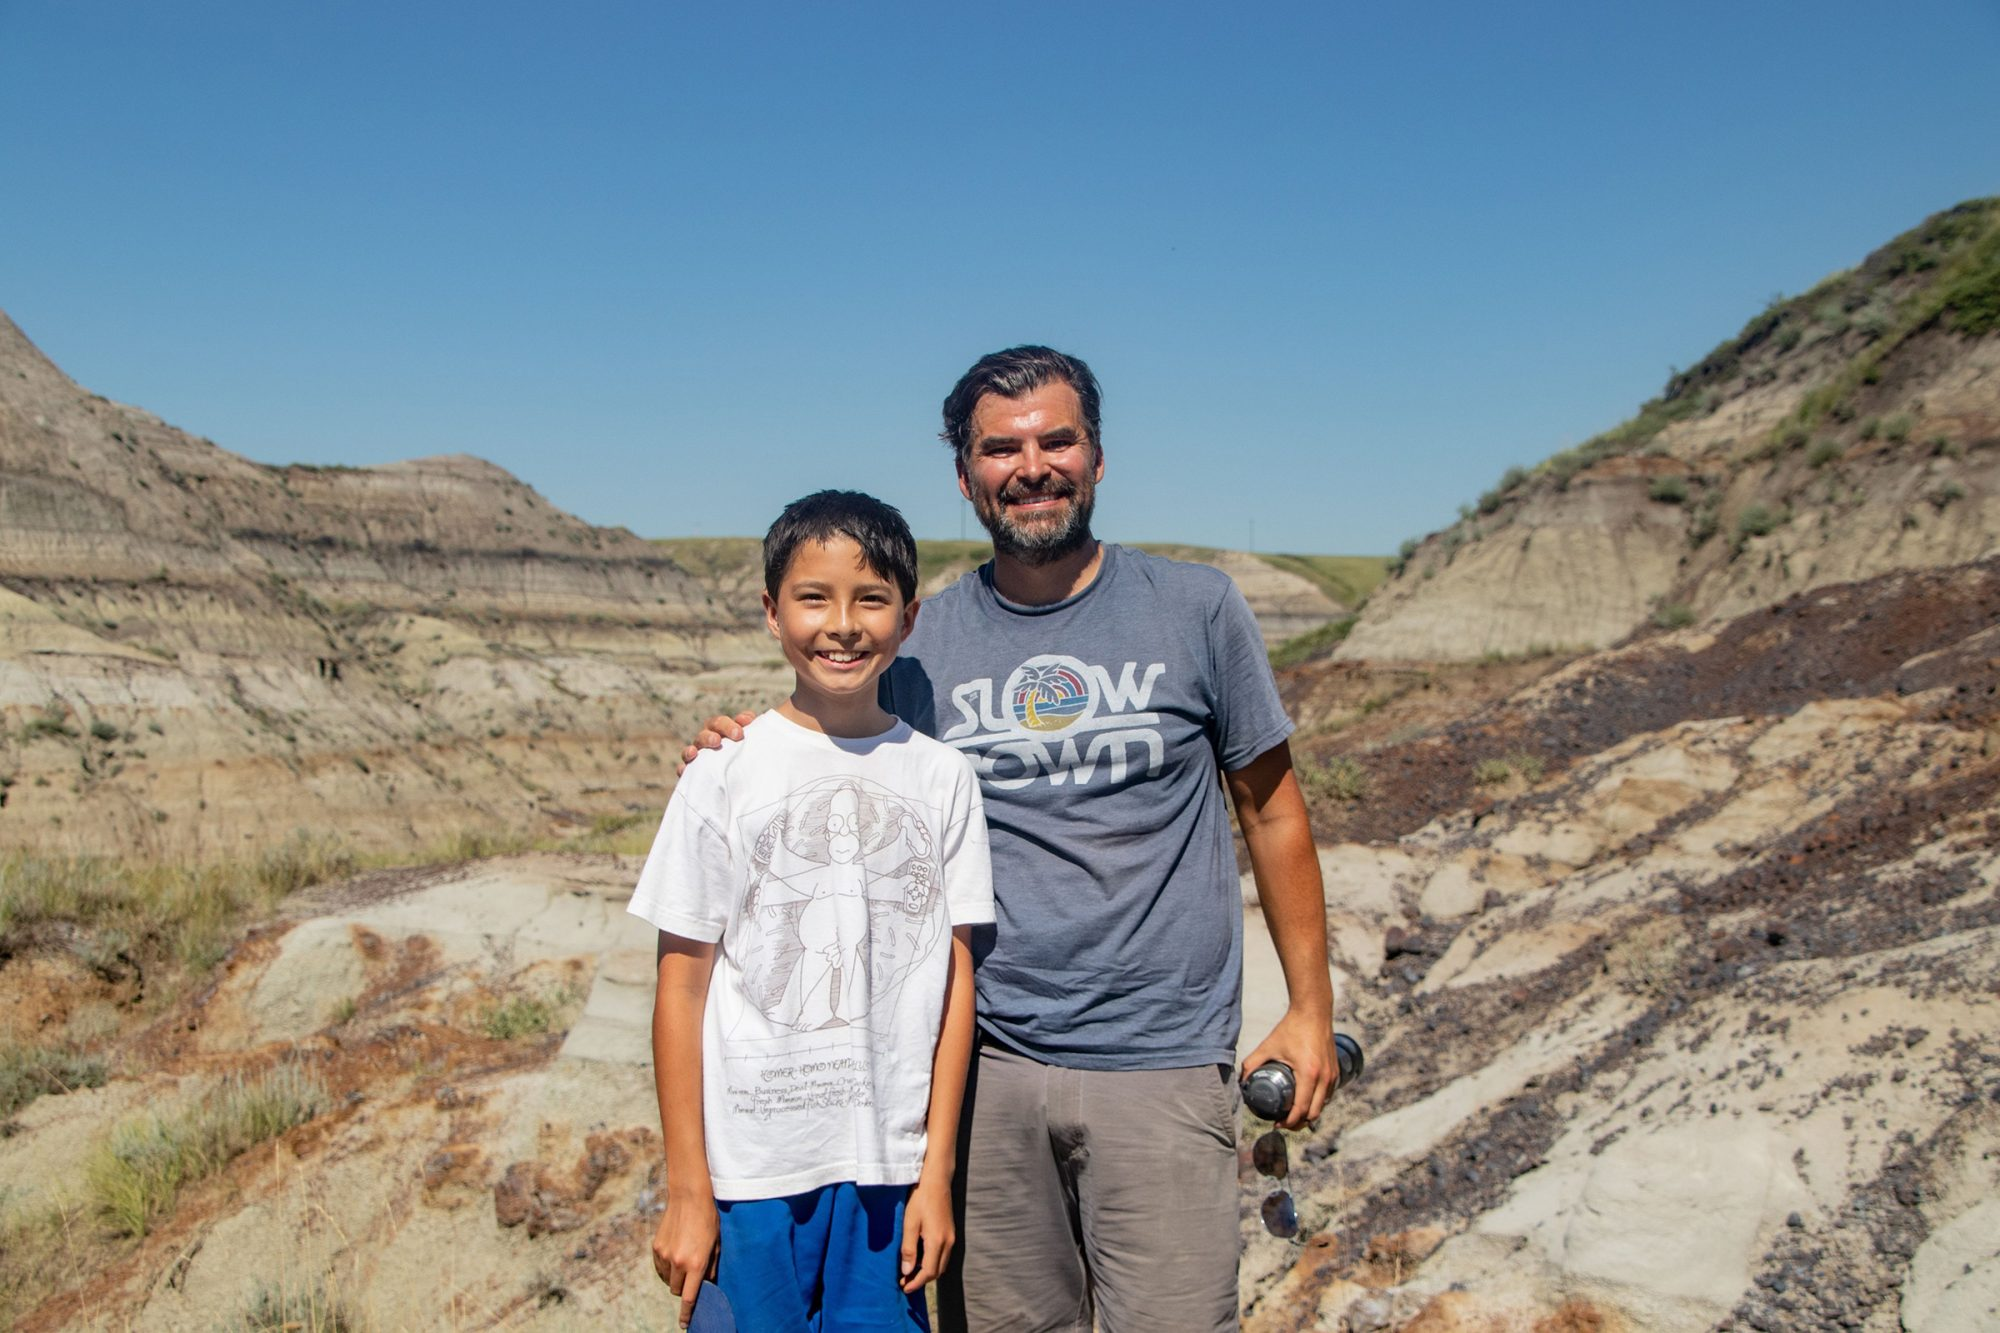 Twelve-year old boy finds dinosaur fossil at Nature Conservancy of Canada Horseshoe Canyon site